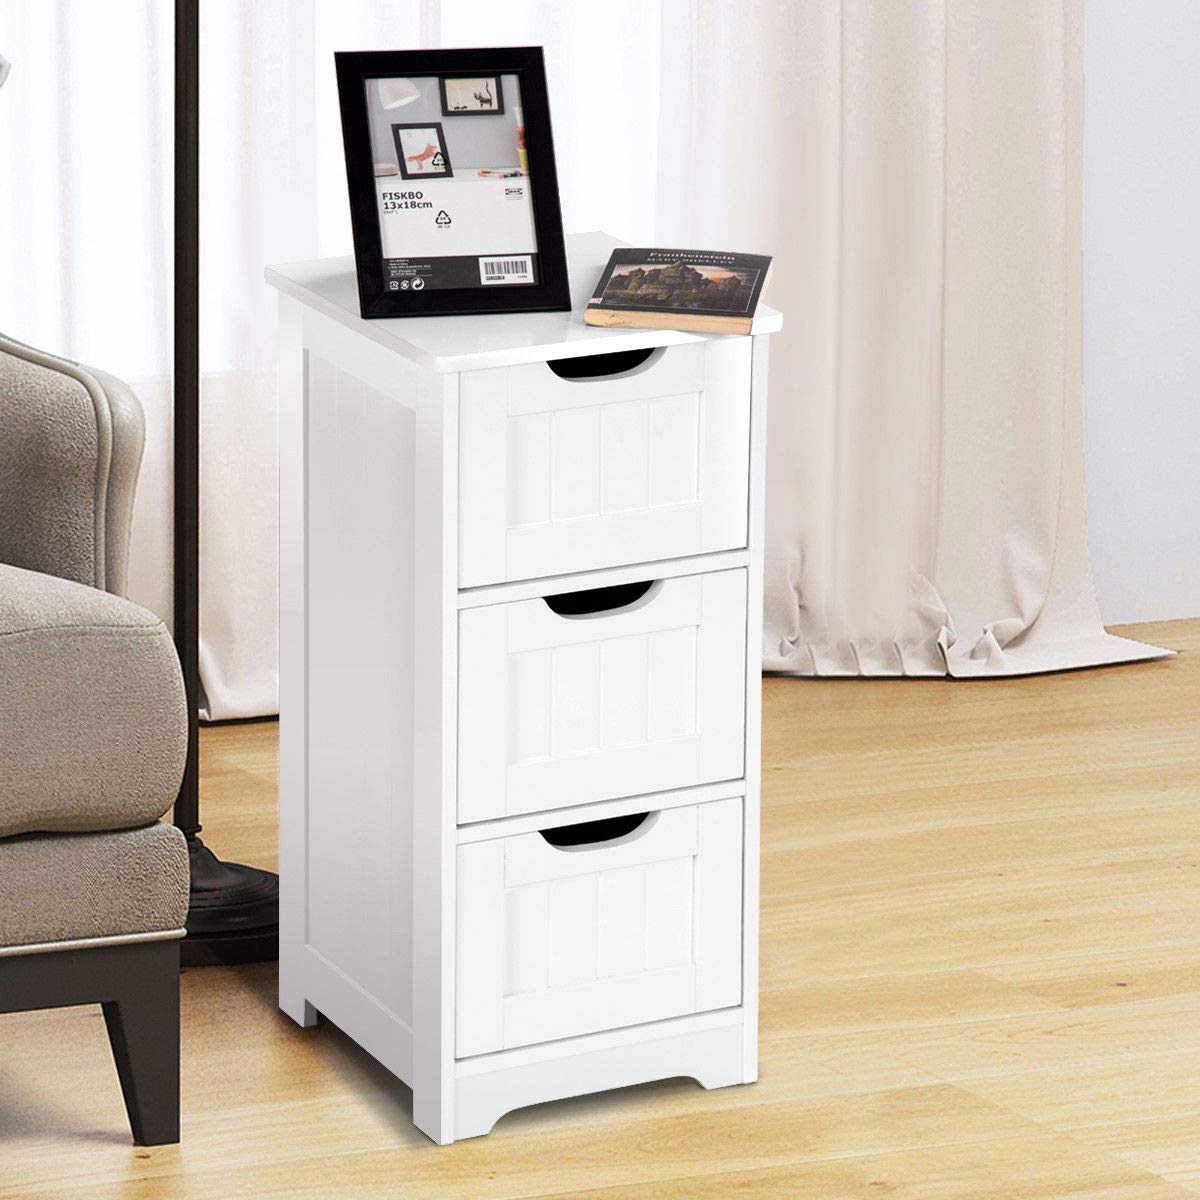 Tangkula Floor Cabinet with 3 Drawers Wooden Storage Cabinet for Home Office Living Room Bathroom Side Table Sturdy Modern Drawer Cabinet Organizer Bedroom Night Stand, White(3 Drawers) by TANGKULA (Image #5)